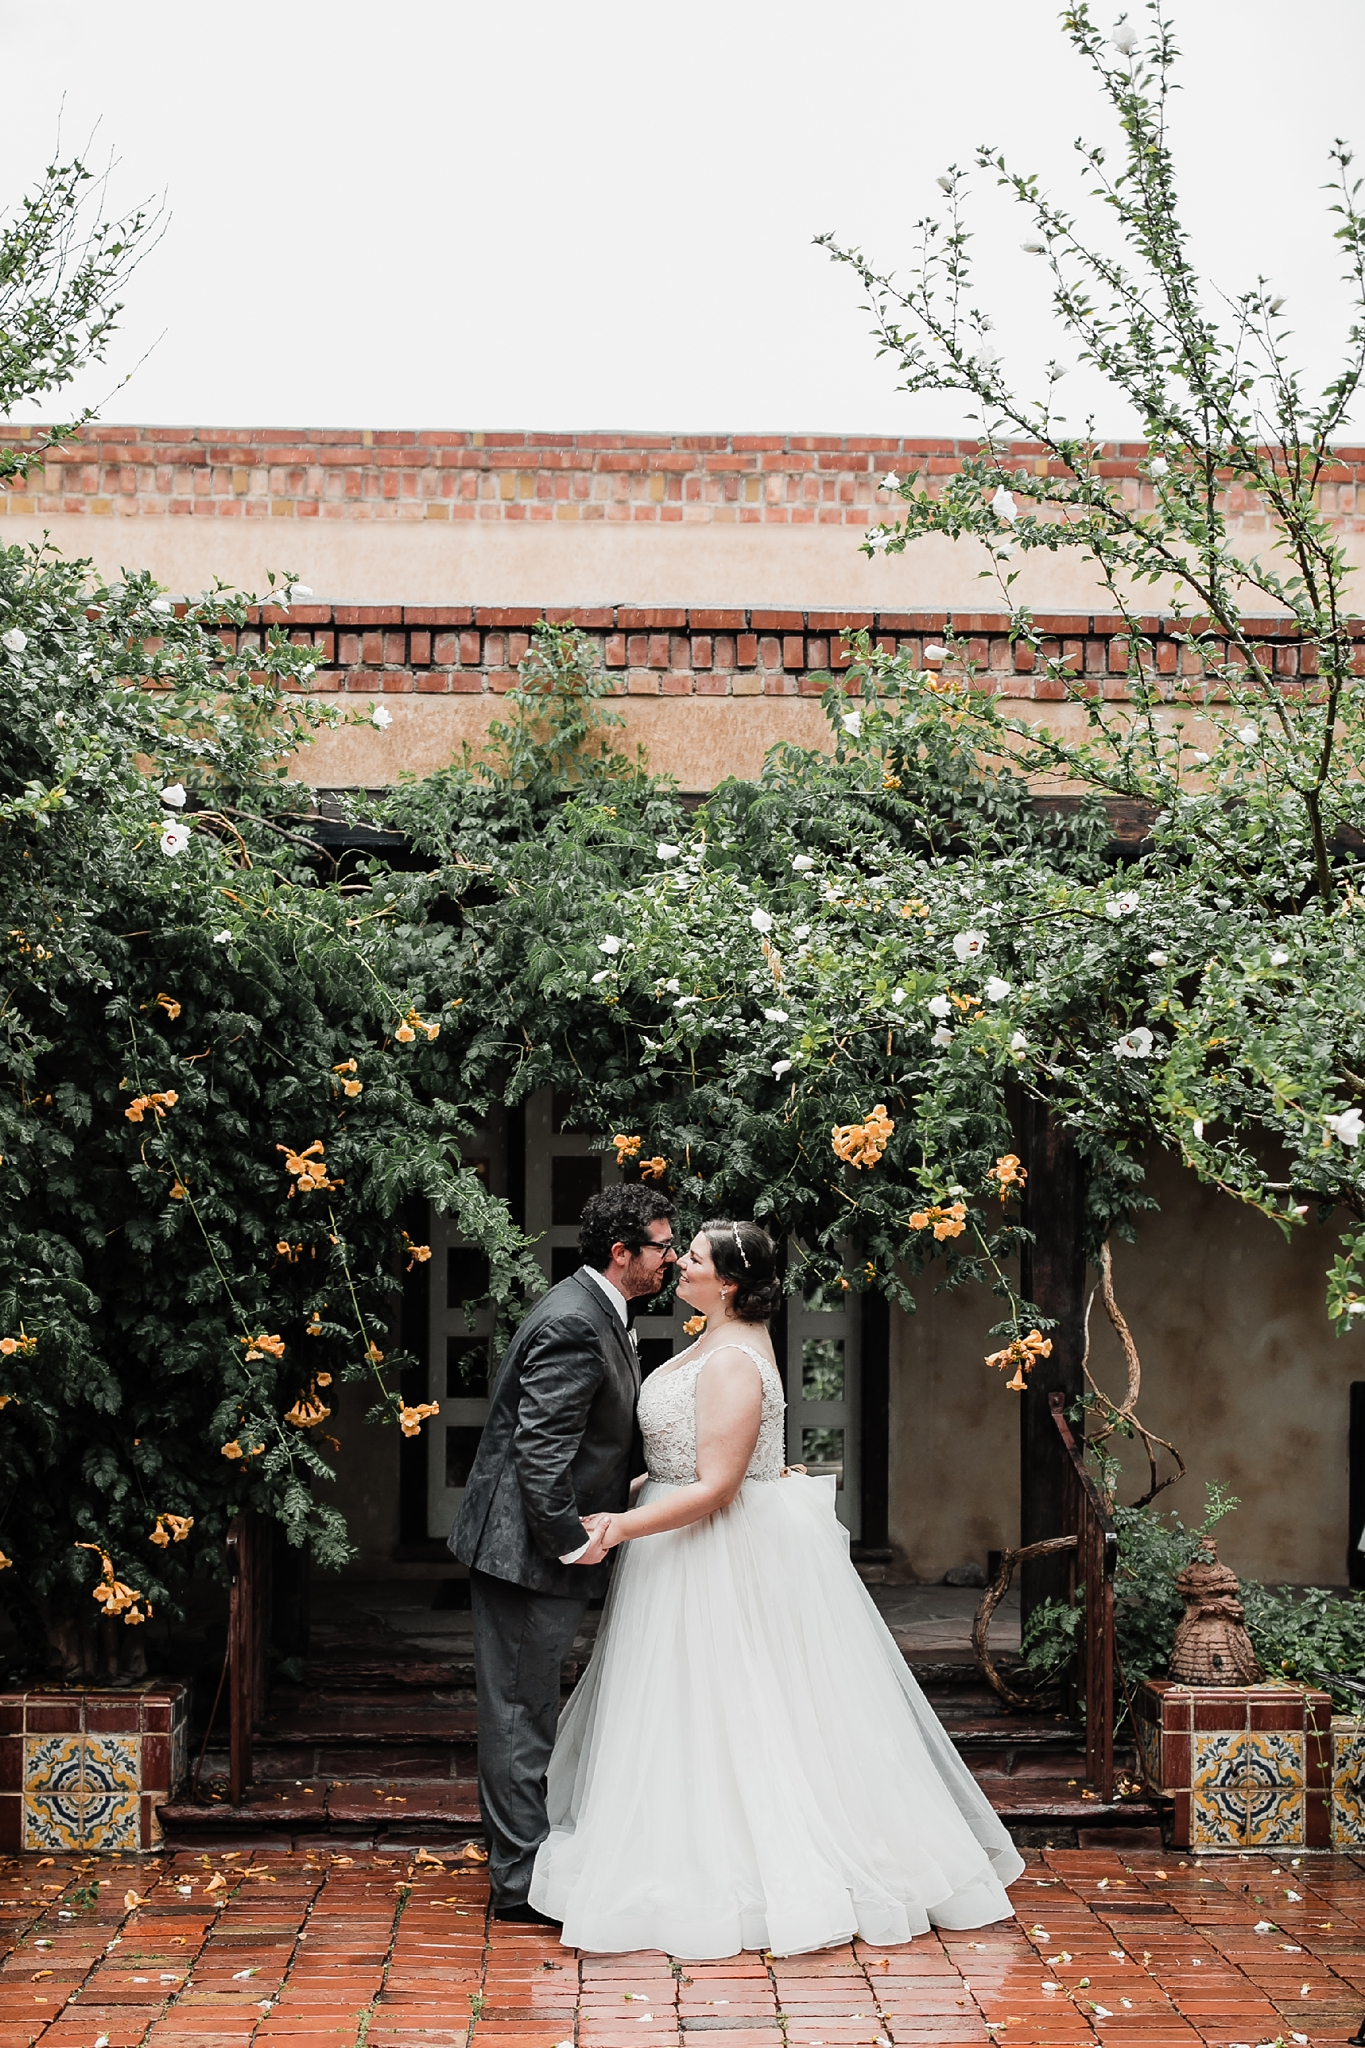 Alicia+lucia+photography+-+albuquerque+wedding+photographer+-+santa+fe+wedding+photography+-+new+mexico+wedding+photographer+-+new+mexico+wedding+-+summer+wedding+-+los+poblanos+wedding+-+albuquerque+wedding_0074.jpg